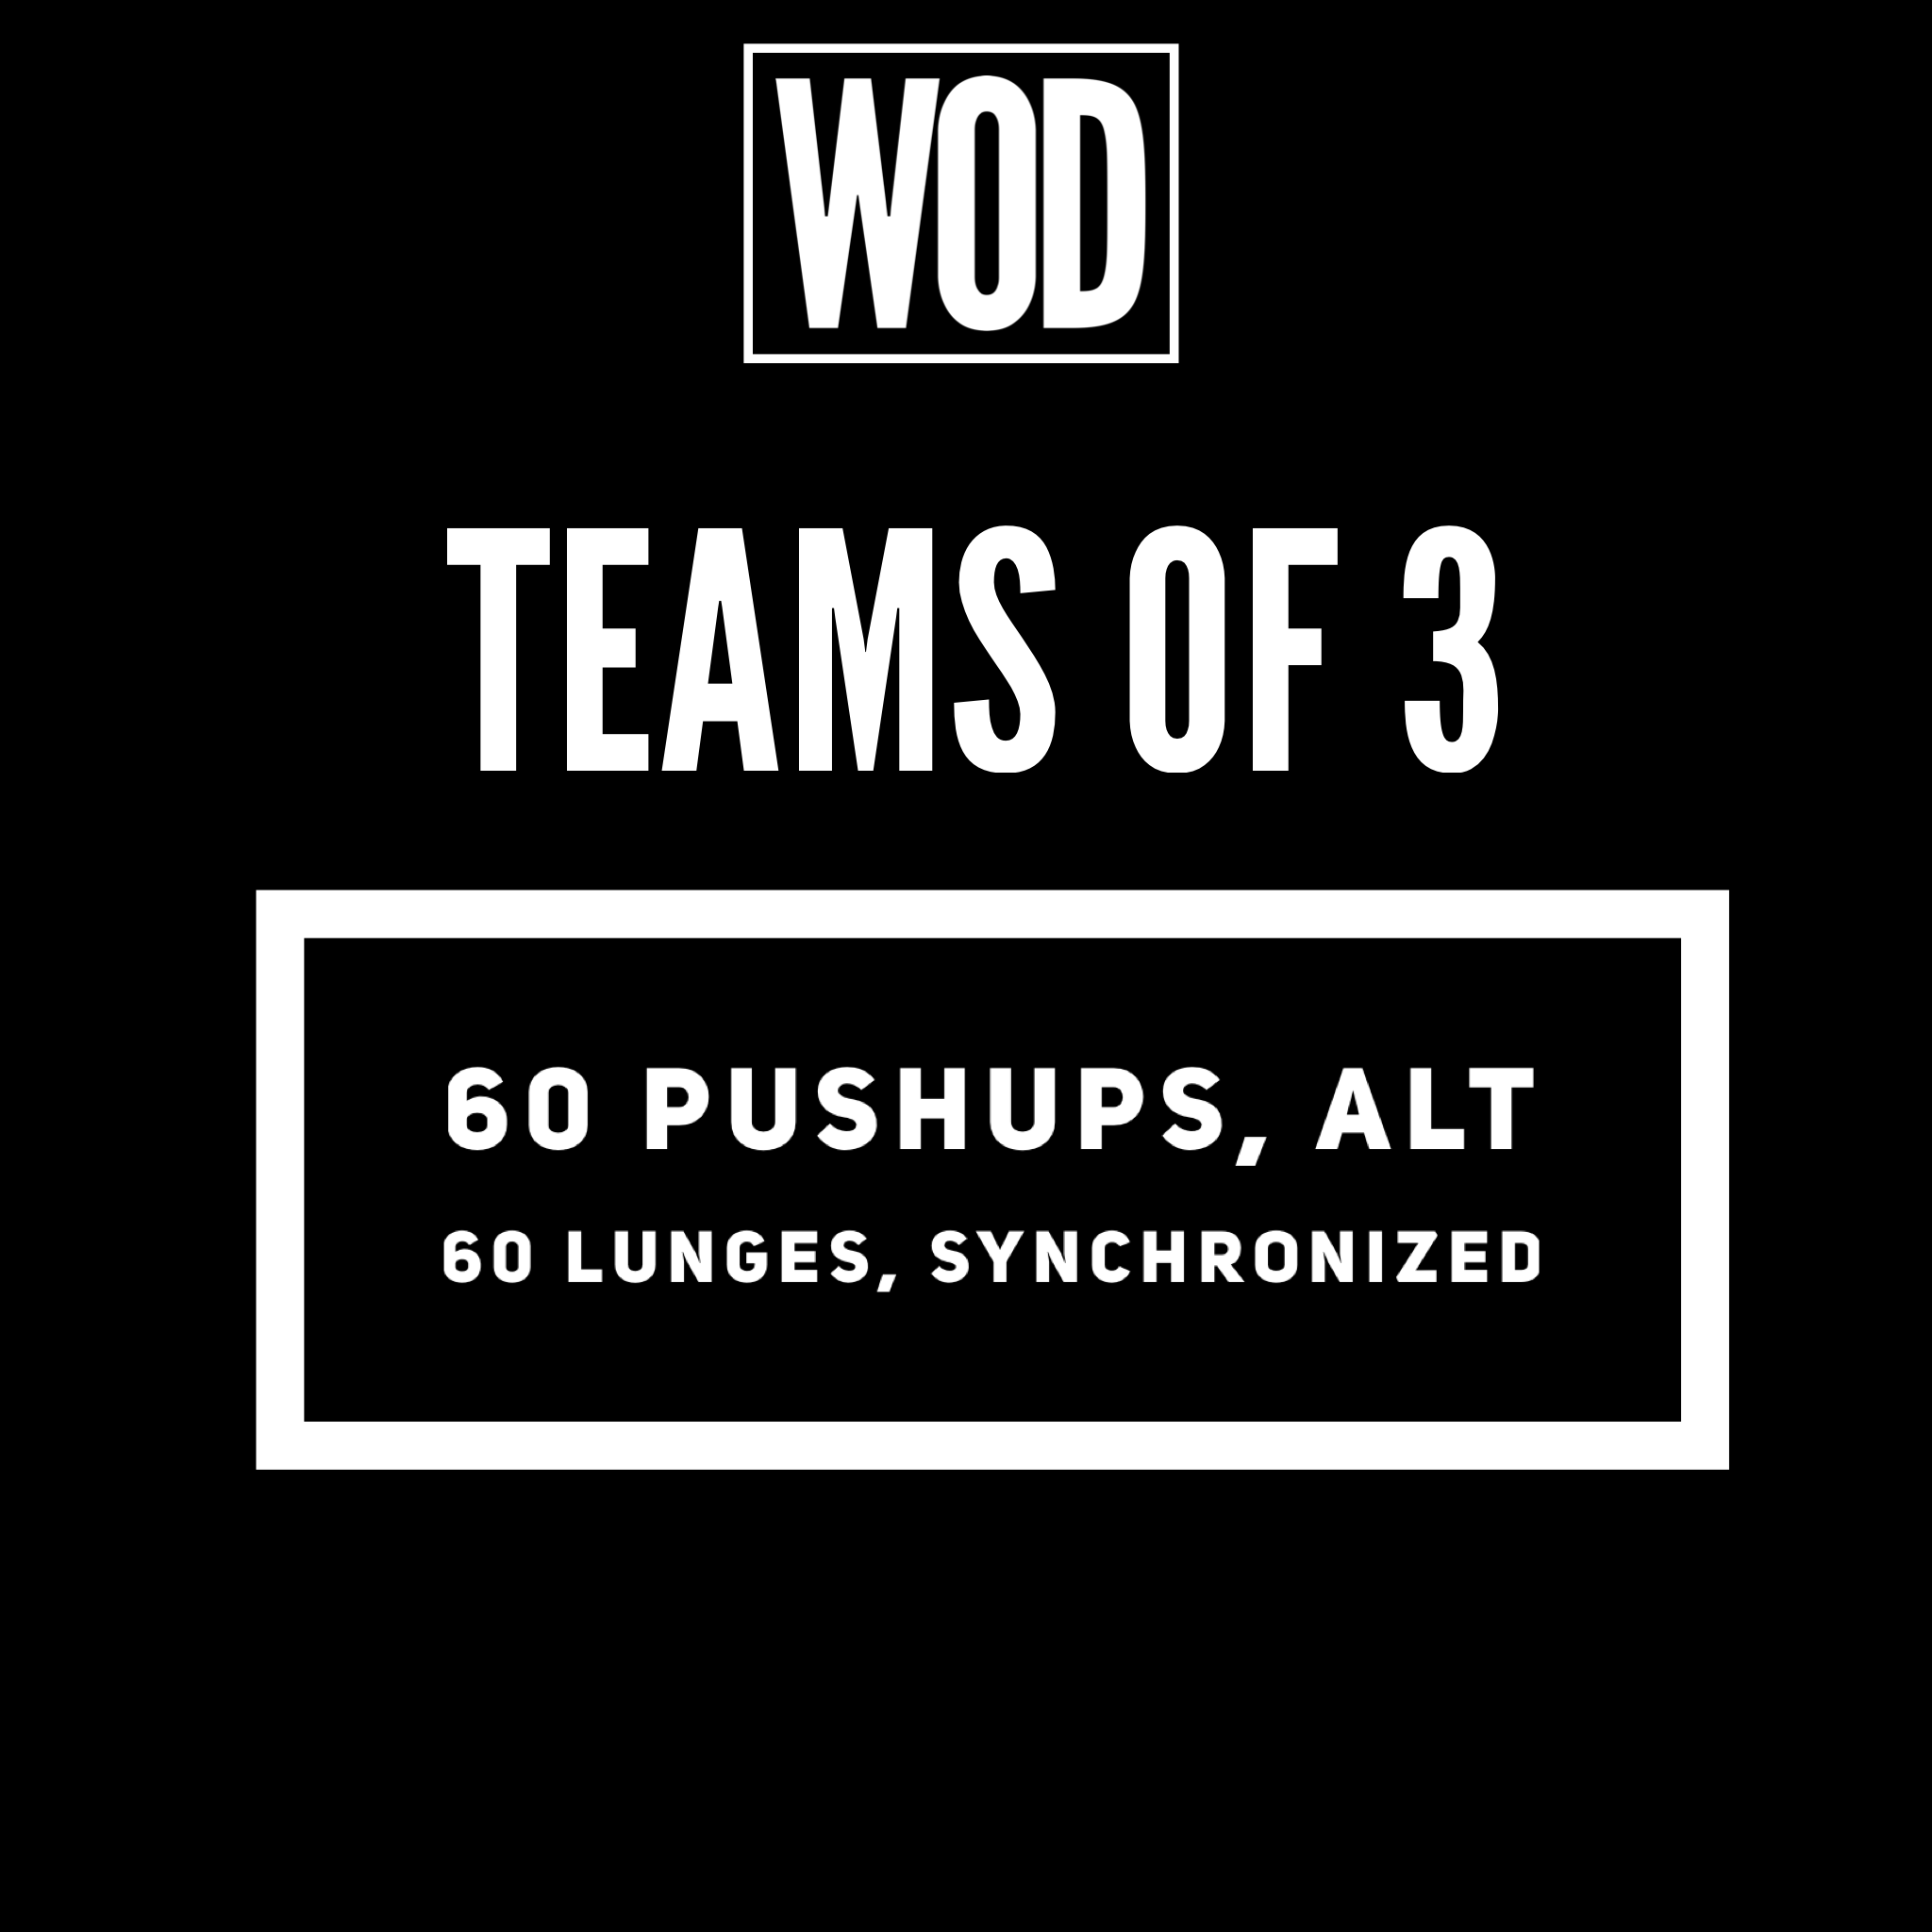 """pushups - all 3 team members will be in and remain in a plank. One person will start with a push-up, then the next will complete one and so on and so forth, alternating until All reps are complete. Level 3 does pushups on 25# plates 😈  The lunges are synchronized. If you feel mismatched from a performance perspective as a team, weigh down the faster person with a kB or scale the movement to a 16"""" step up. :)"""